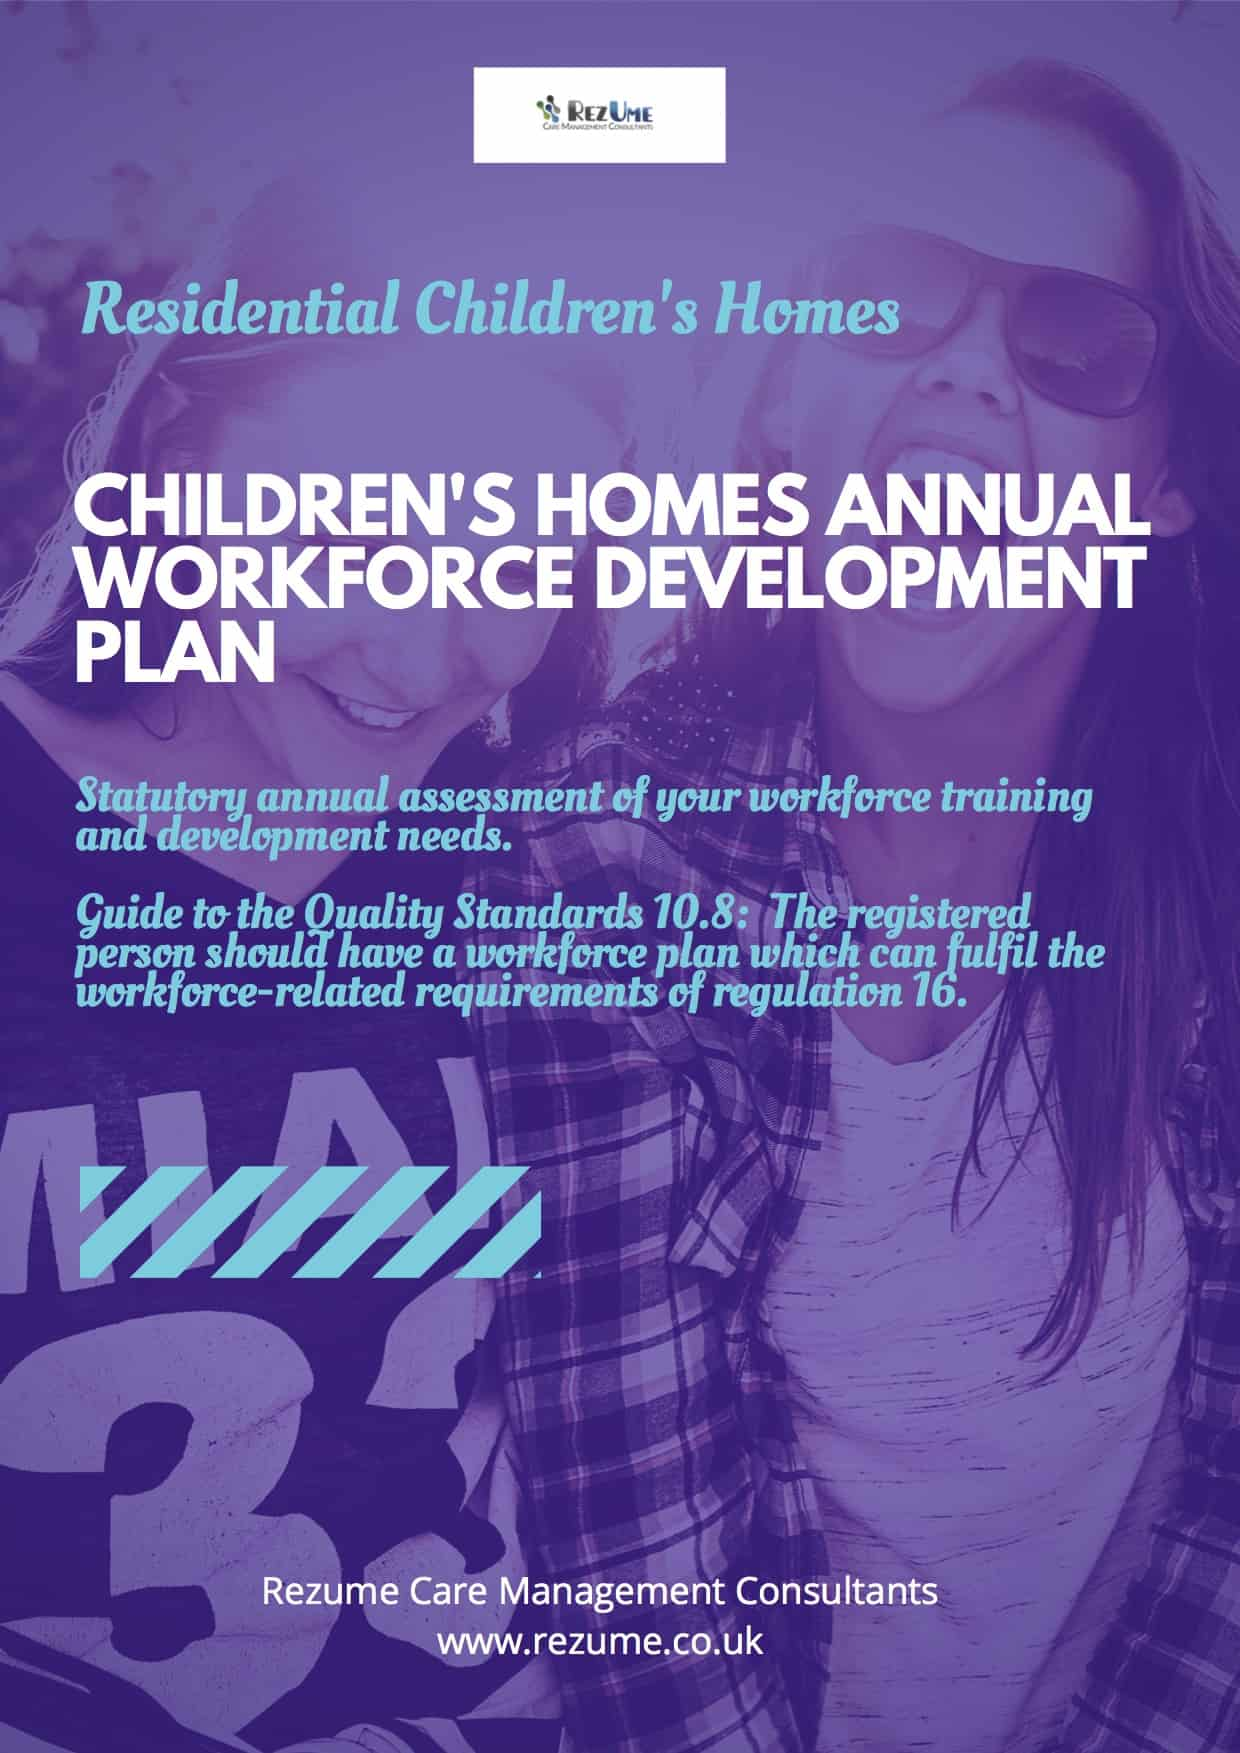 Workforce development plan children's homes